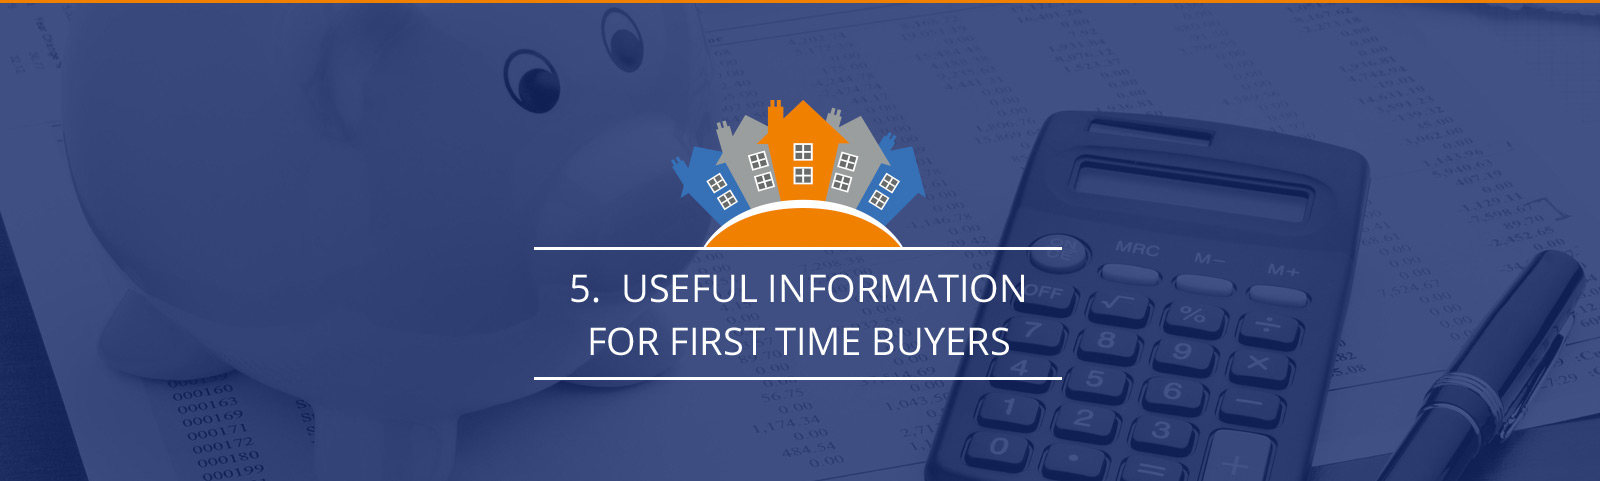 Useful Information for first time buyers